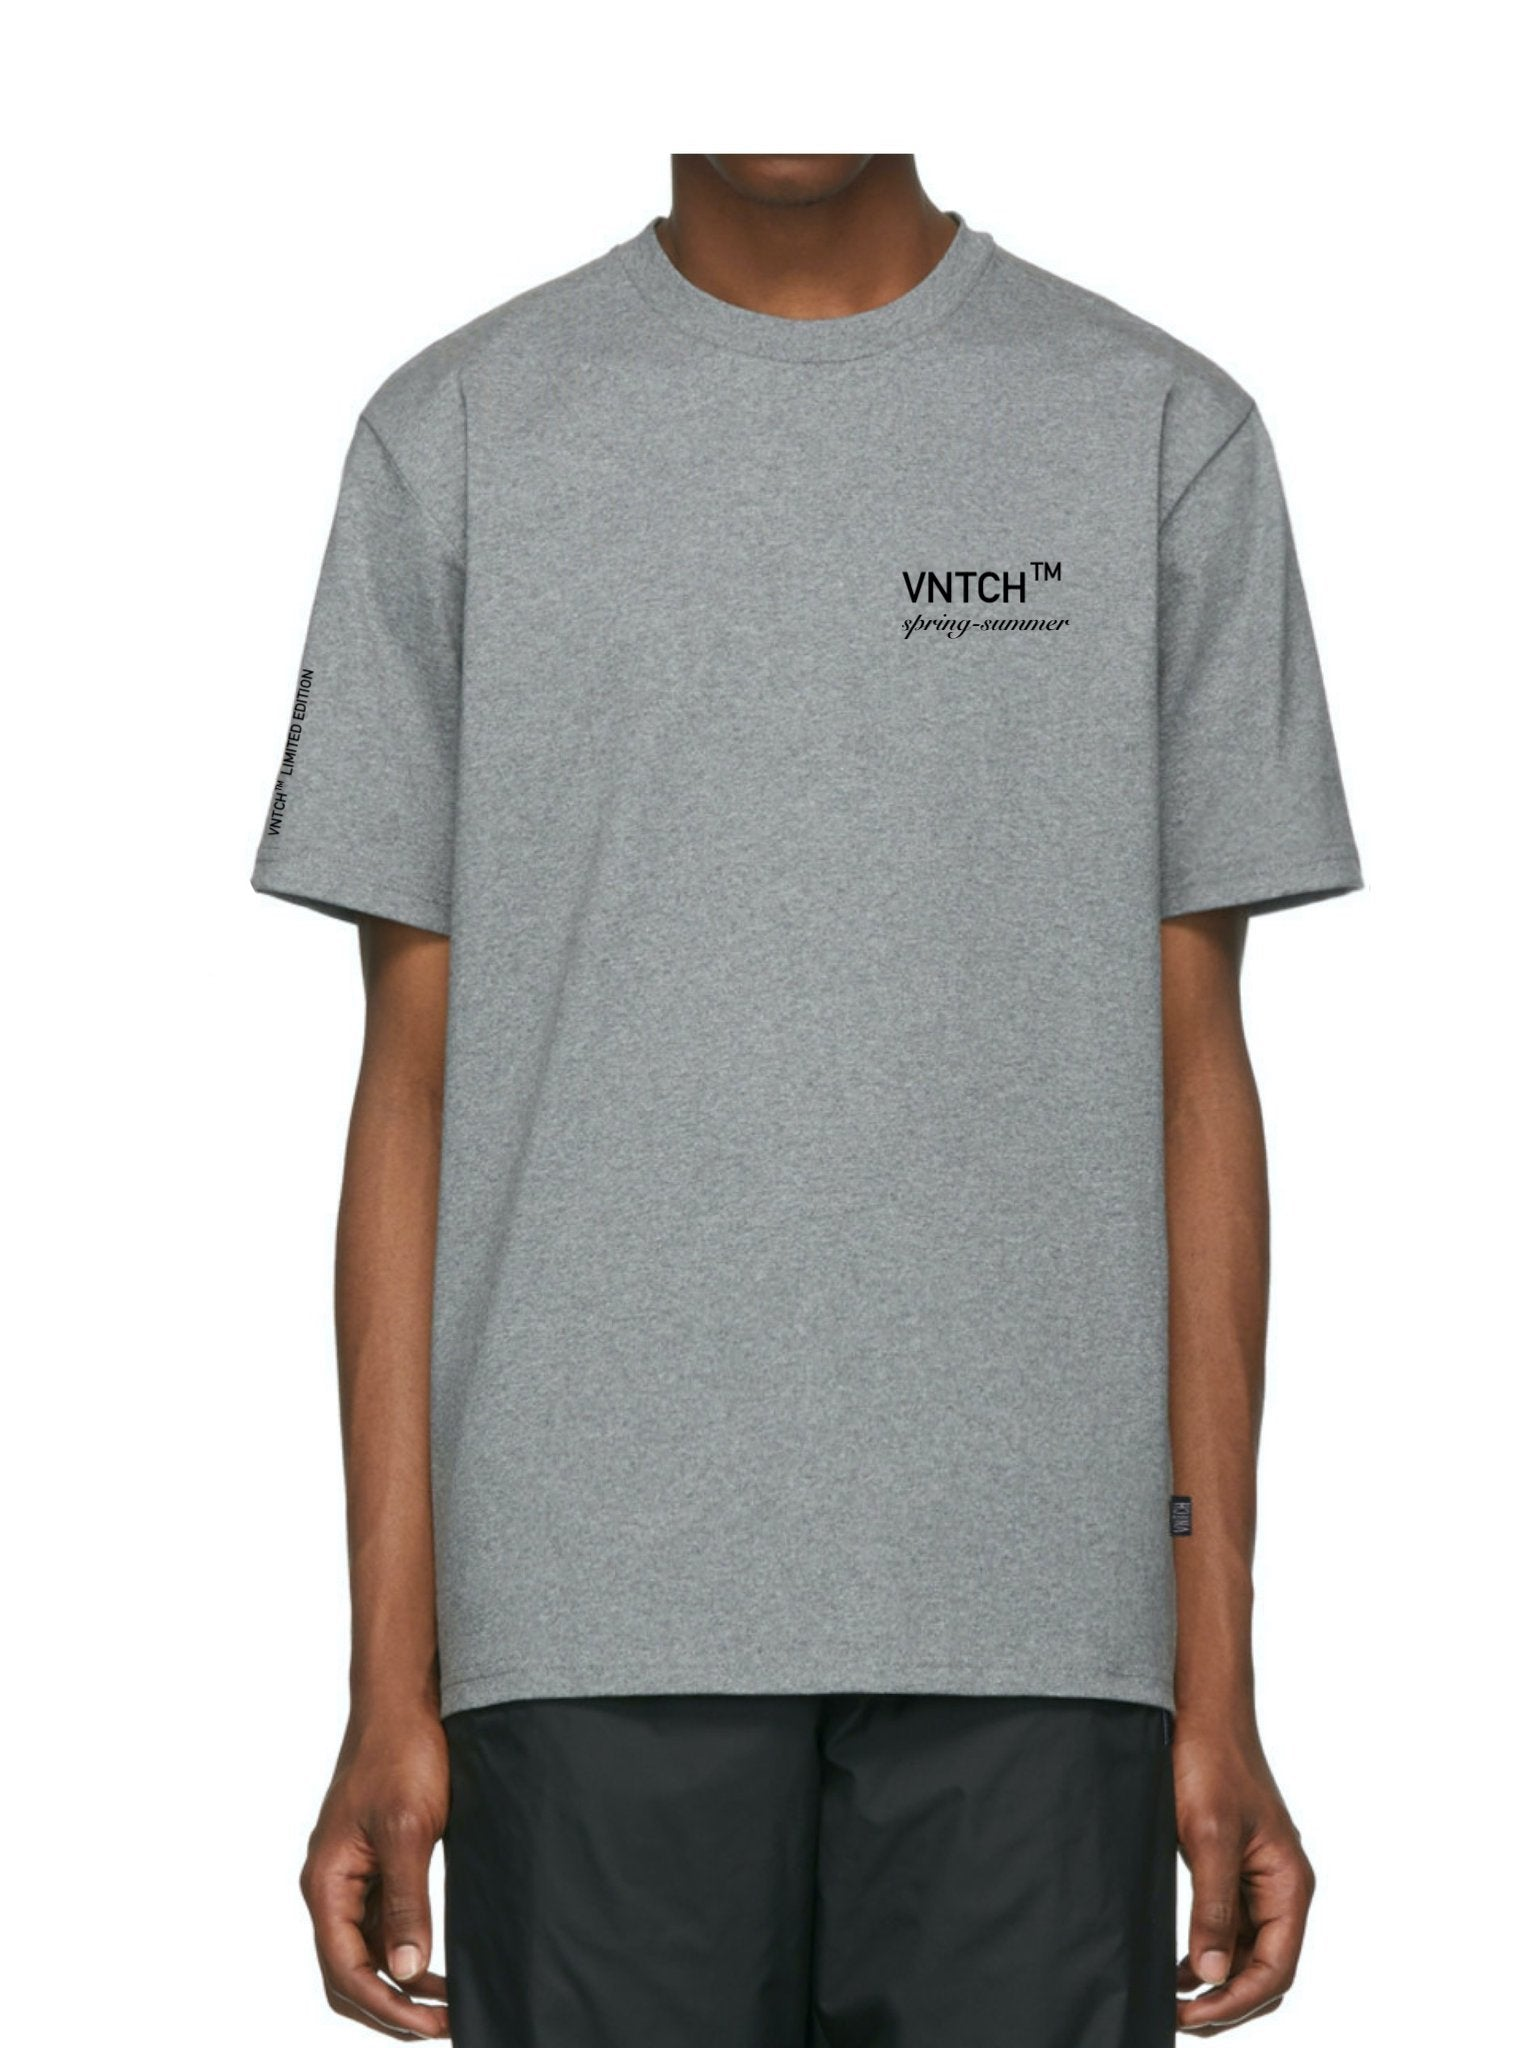 VNTCH HEAD T-SHIRT GREY